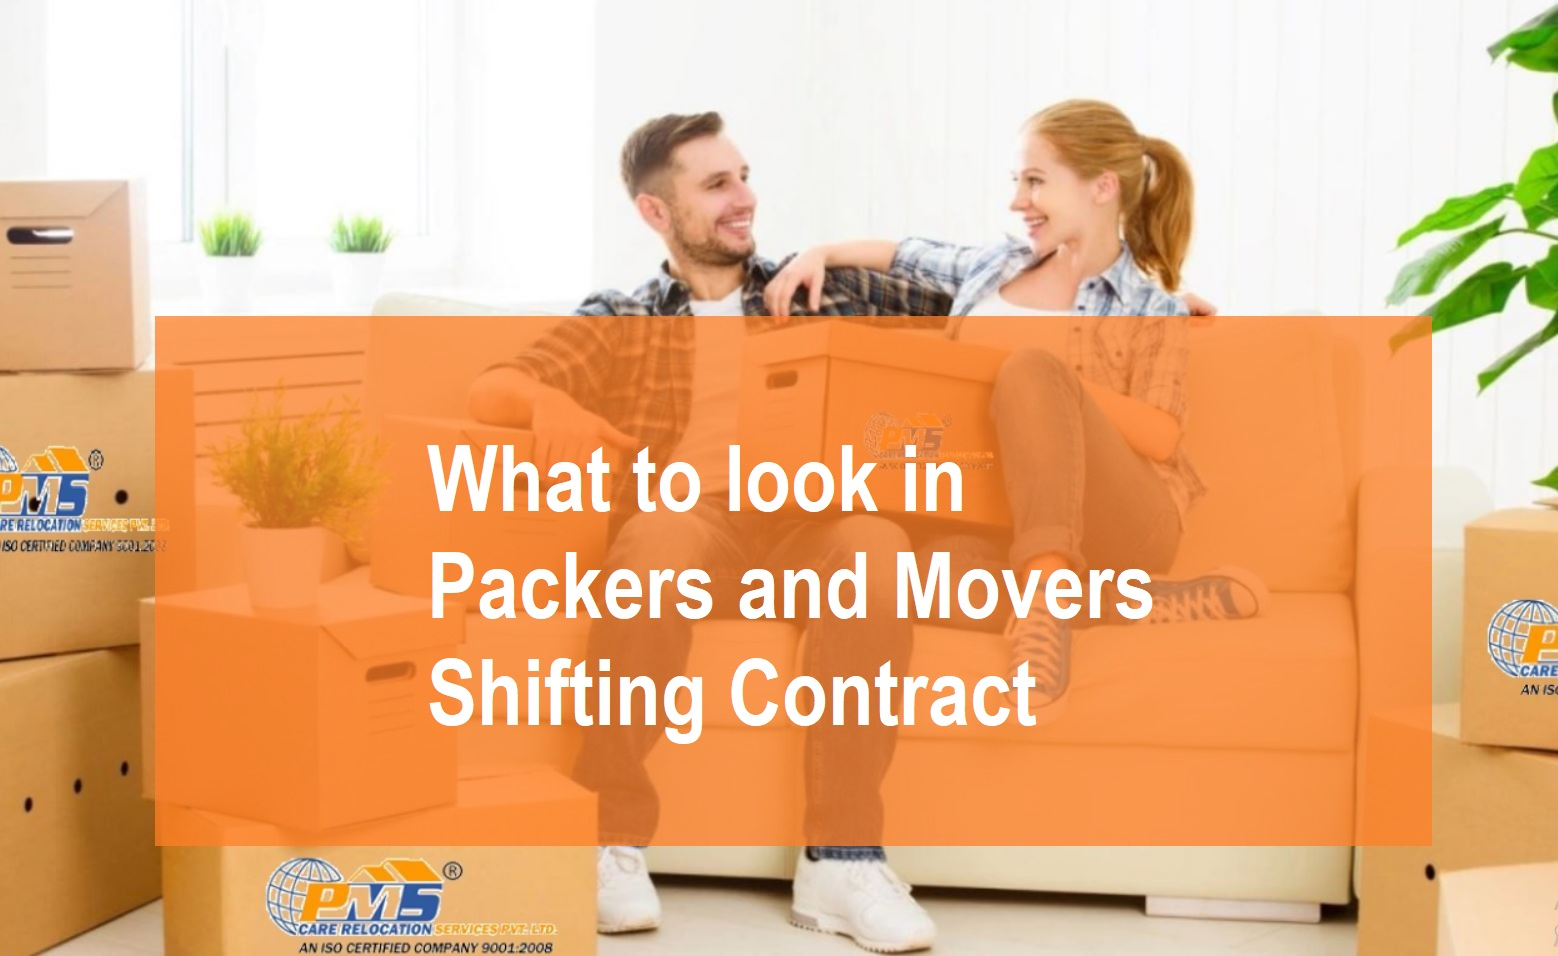 movers and packers; movers and packers pune; packers; packers and movers; Packers and Movers near me; packers and movers in pune; pune packers and movers; packers movers pune; packers movers; packers and movers services pune; packers and movers pune reviews; packers and movers pune review; packers and movers pune; pune packers and mover; movers; relocation services pune; relocation; packers and movers pune near me; pune; movers pune; Packers and Movers Shifting Contract